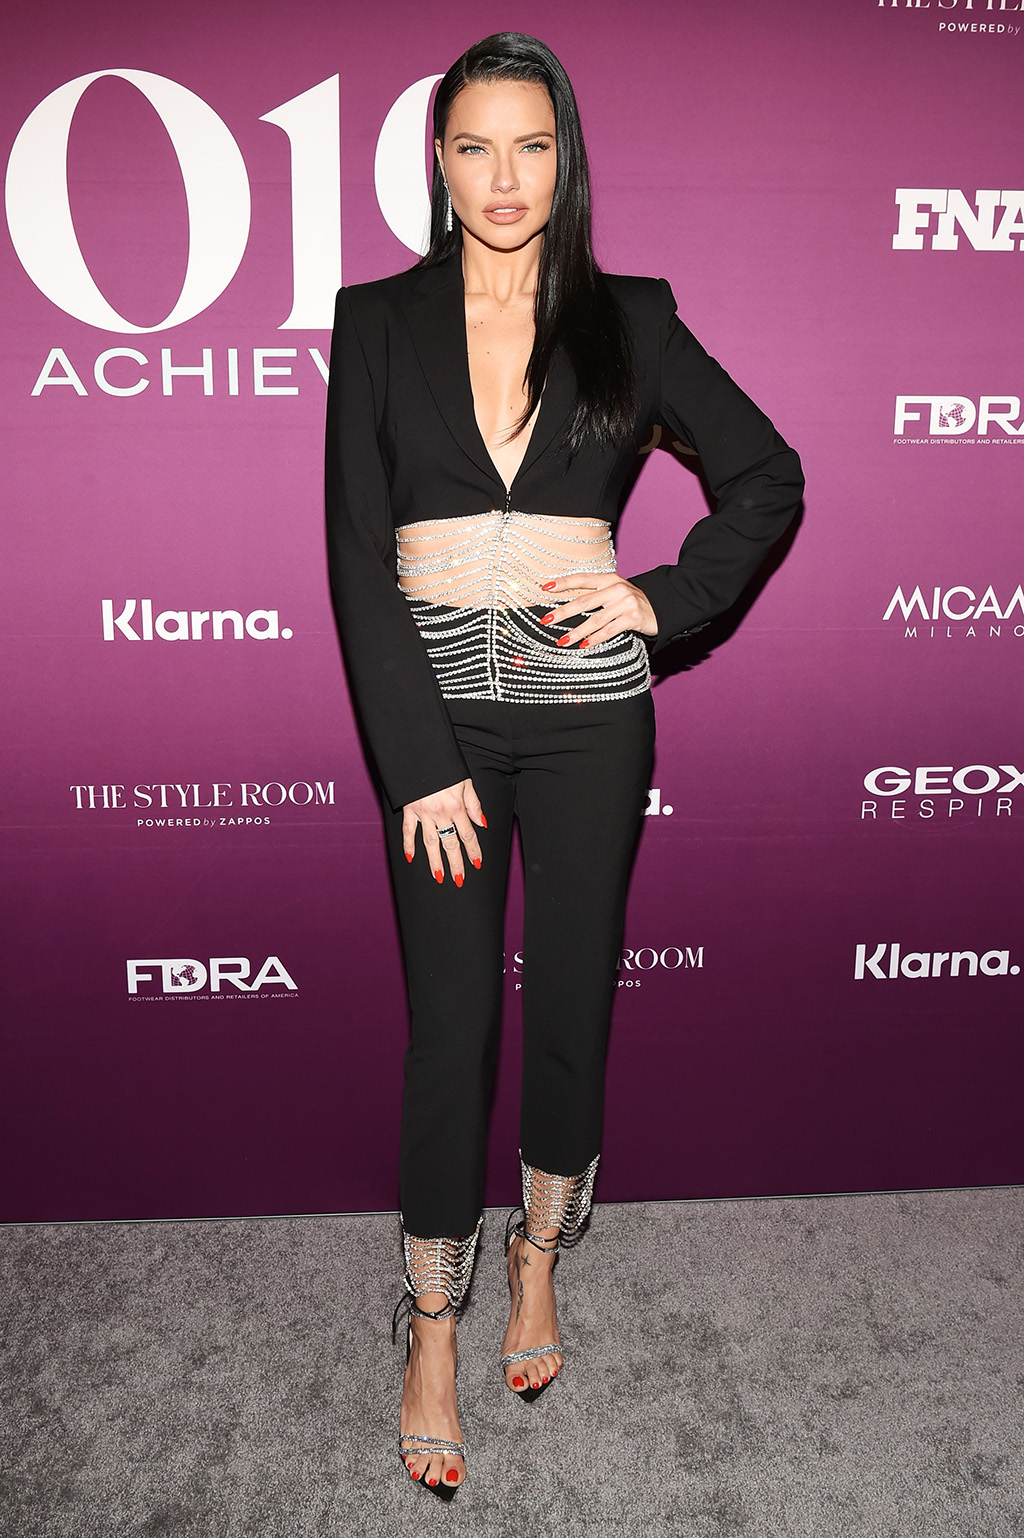 Adriana Lima, abs, red carpet, celebrity style, fnaas, 33rd Annual Footwear News Achievement Awards, Arrivals, New York, USA - 03 Dec 2019